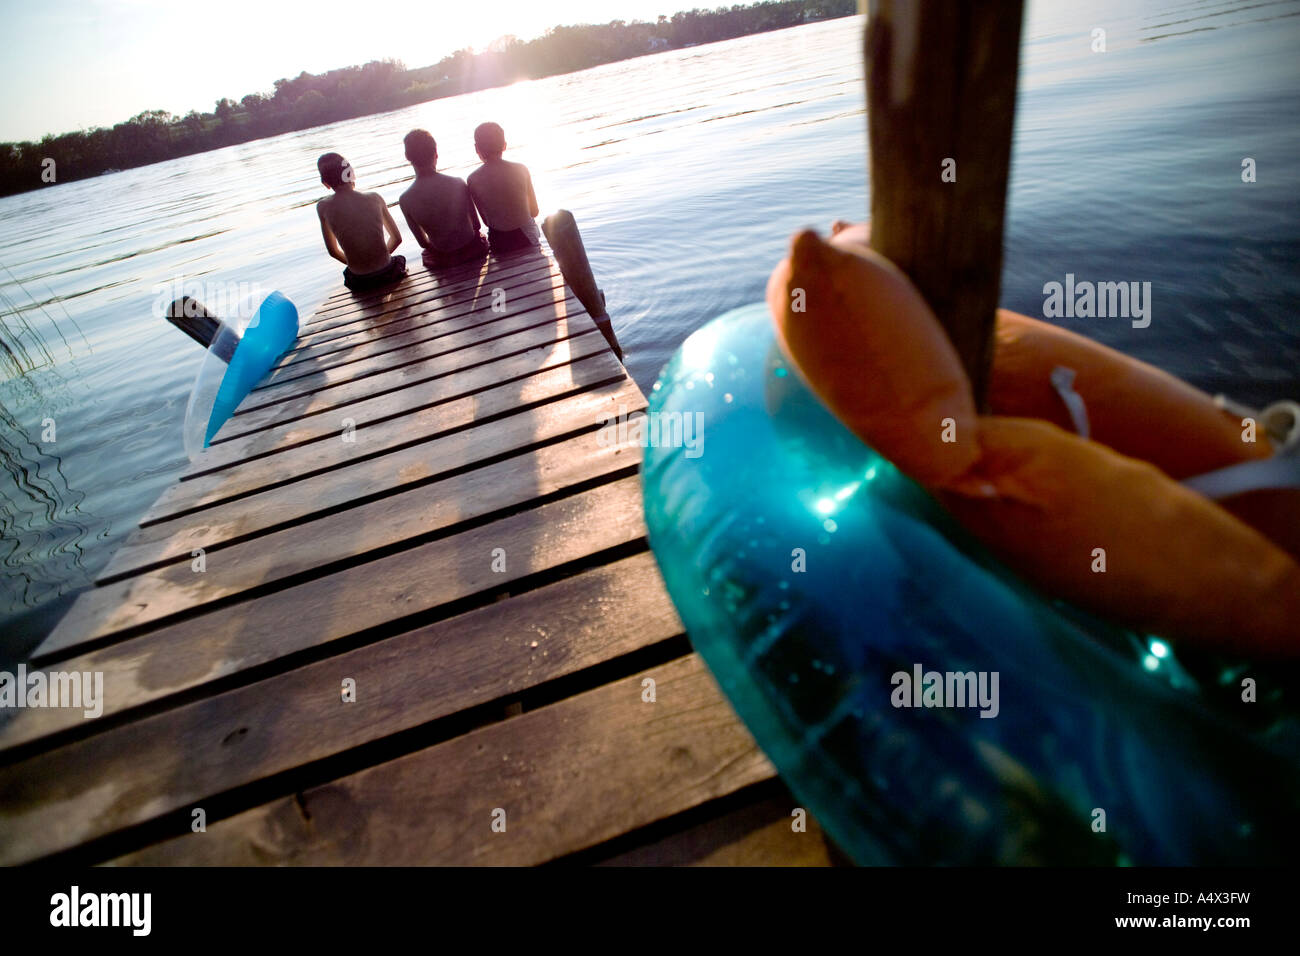 Kids sitting on a dock into a Lake Stock Photo